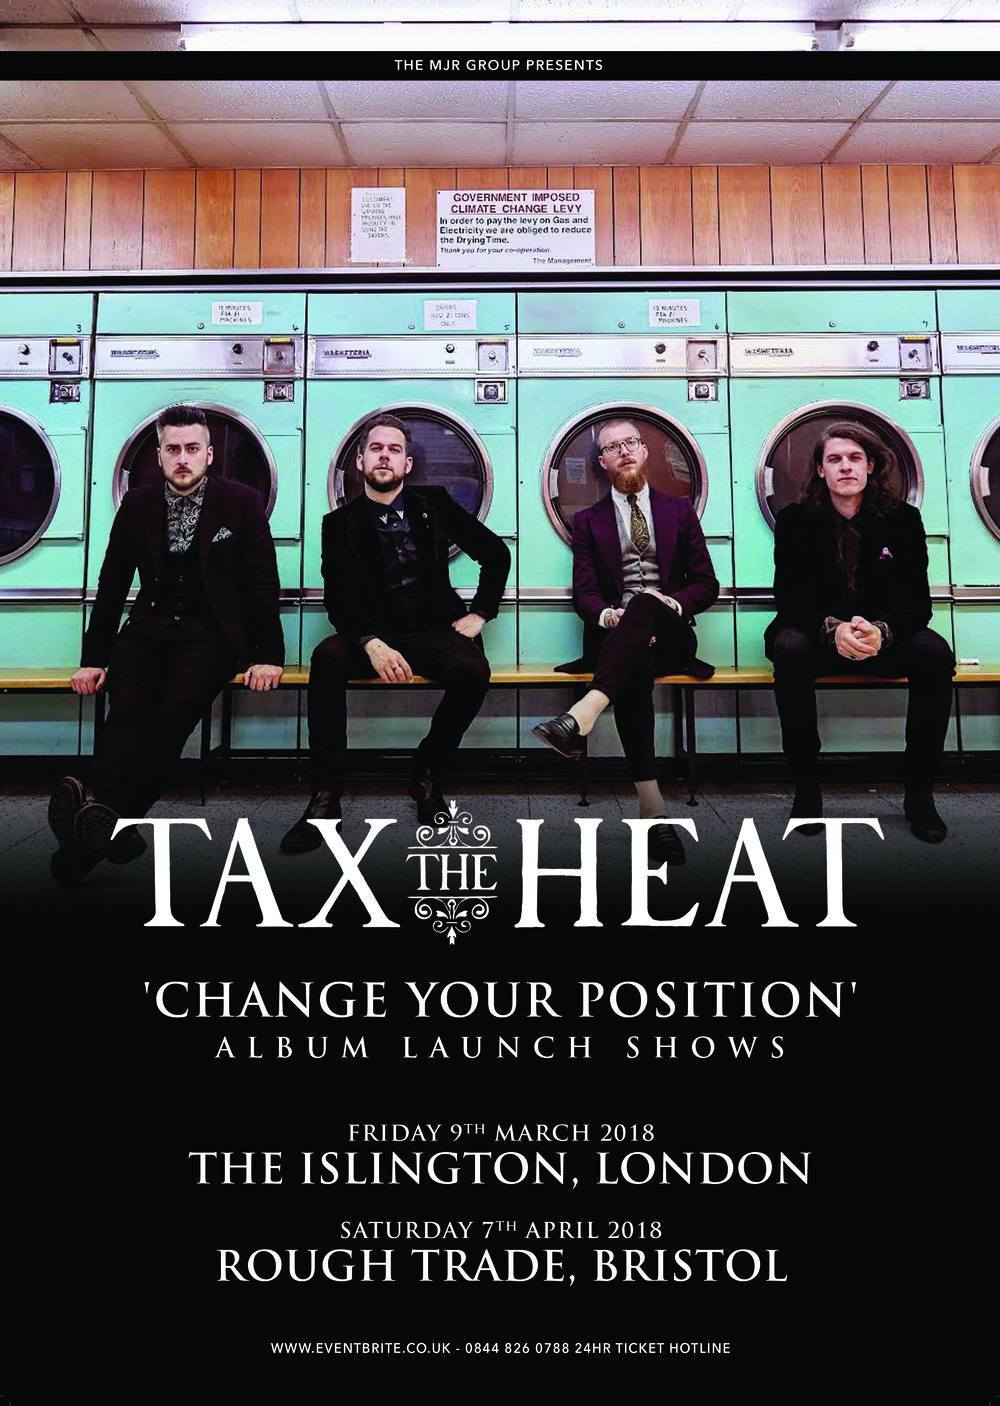 TaxTheHeat-London+Bristol-A3.jpg